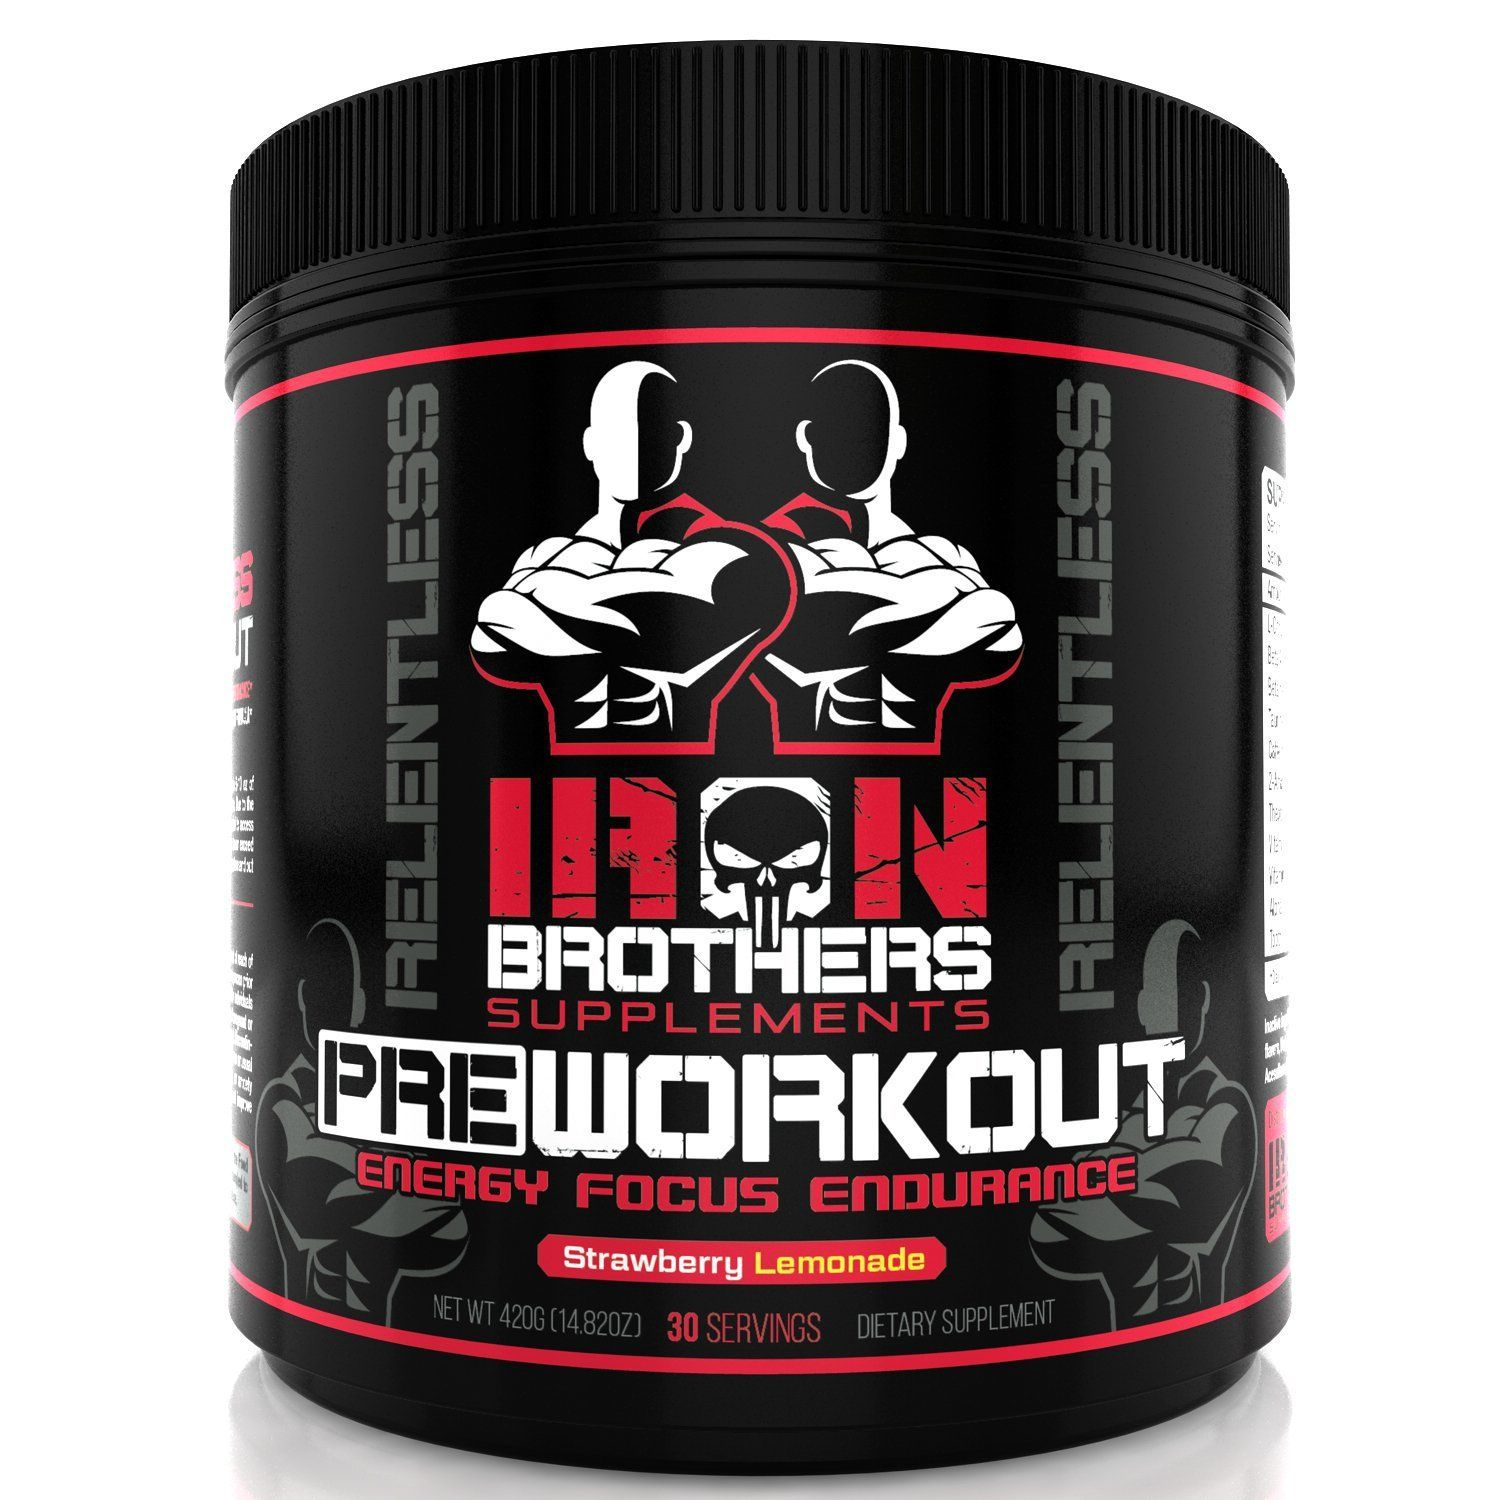 Top 8 Strongest Pre Workout Supplements For High Energy 2020 Best Creatine Pre Workout Supplement Preworkout